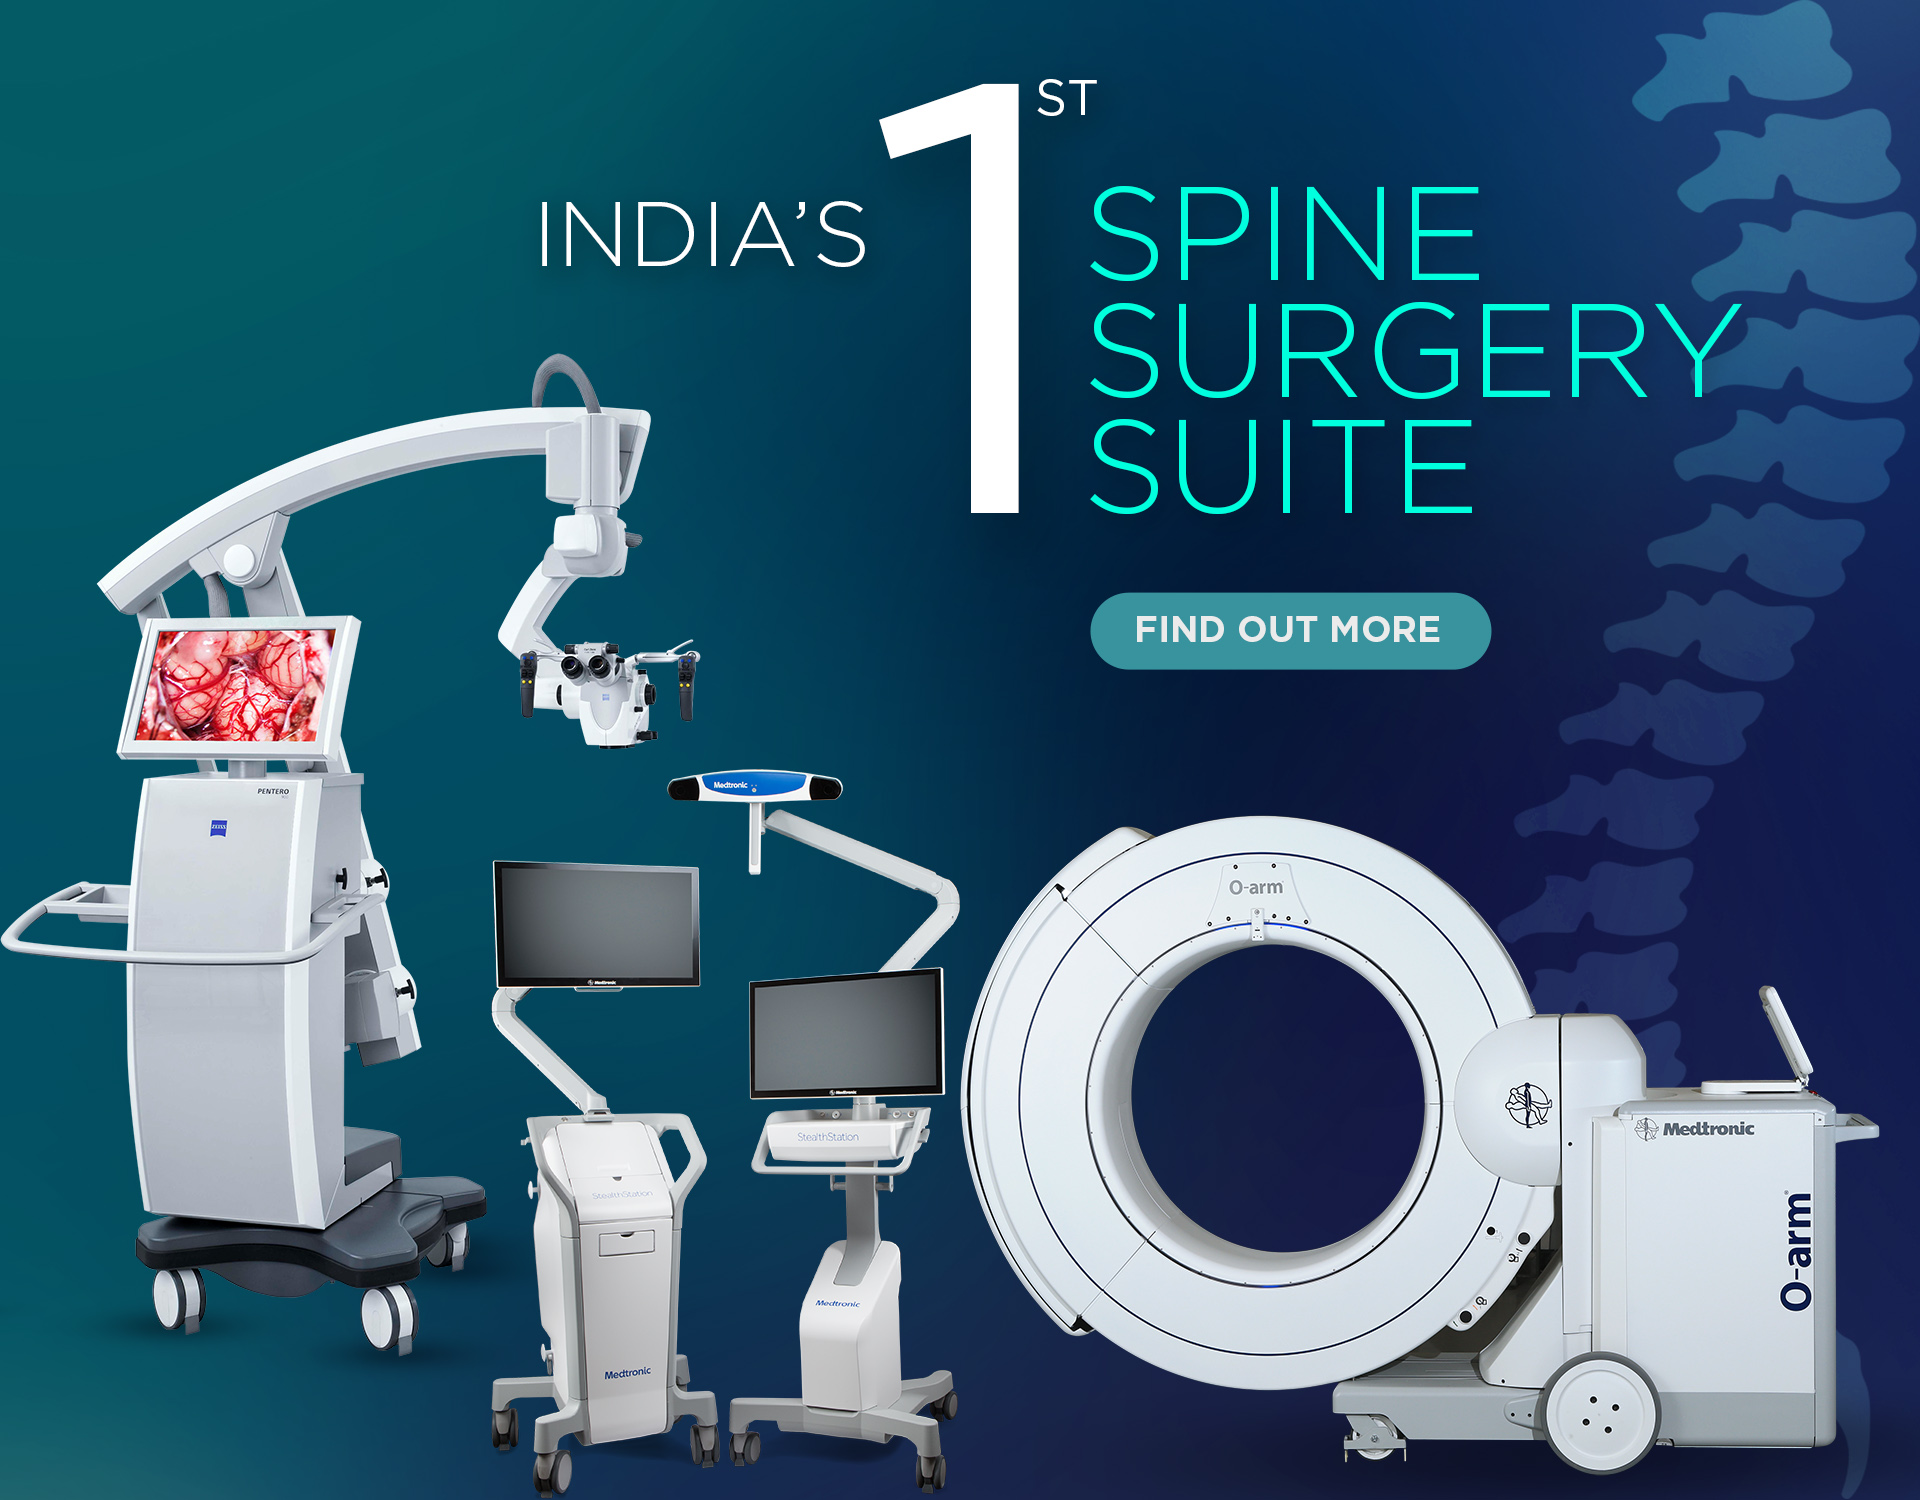 Kokilaben Dhirubhai Ambani Hospital - India's First Spine Surgery Suite